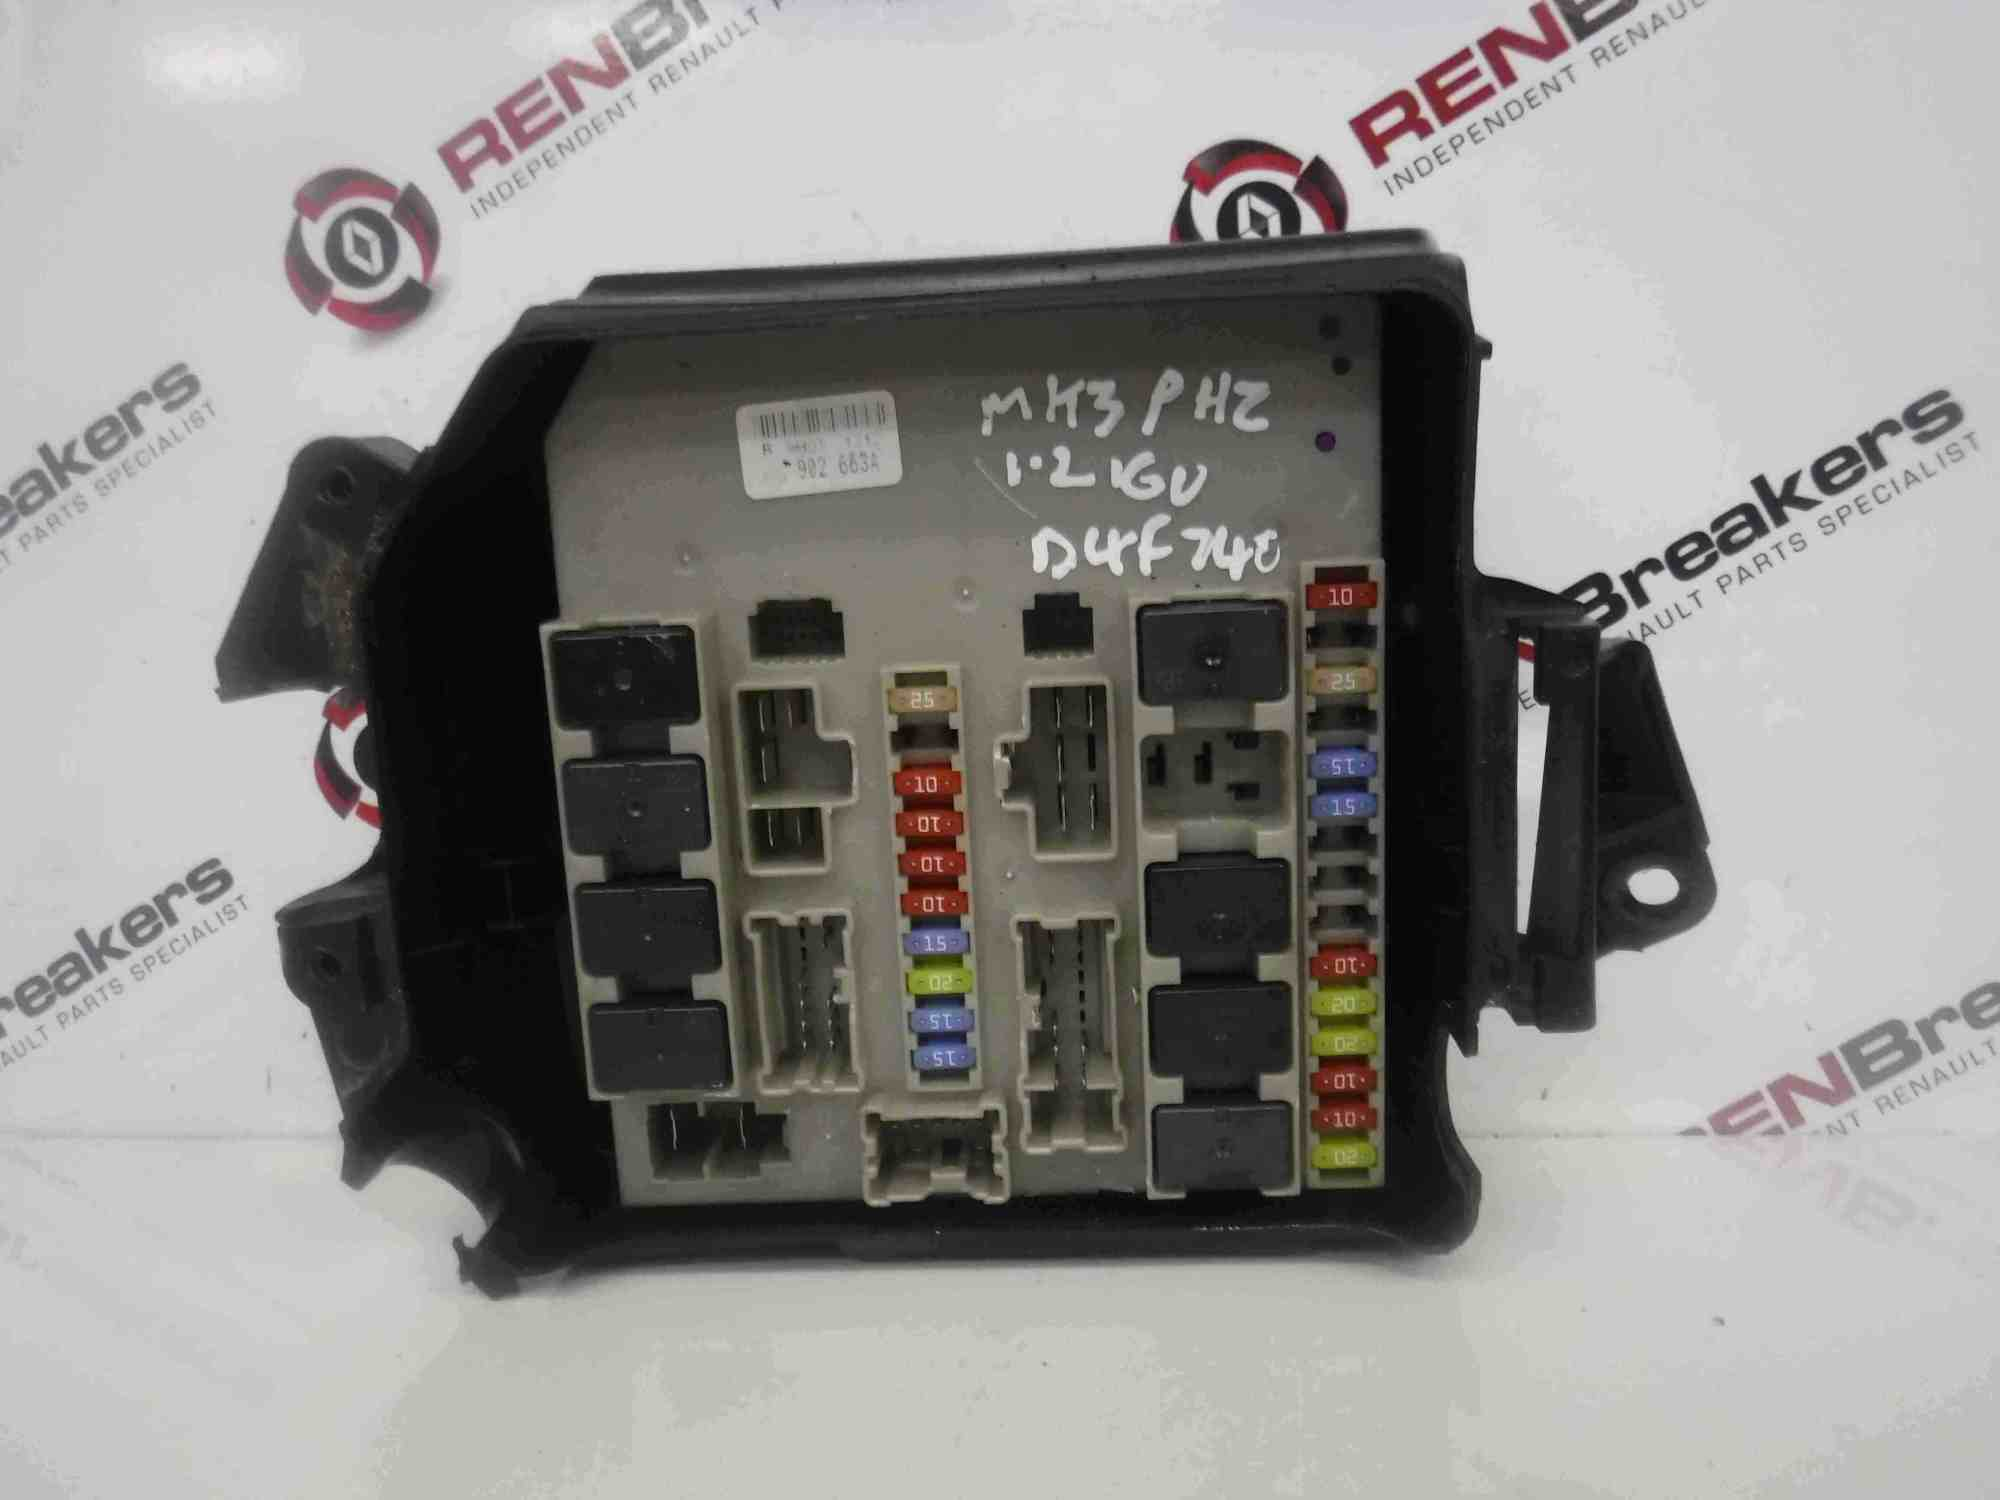 hight resolution of renault clio 4 fuse box location wiring diagram forward renault clio 4 fuse box location renault clio 4 fuse box